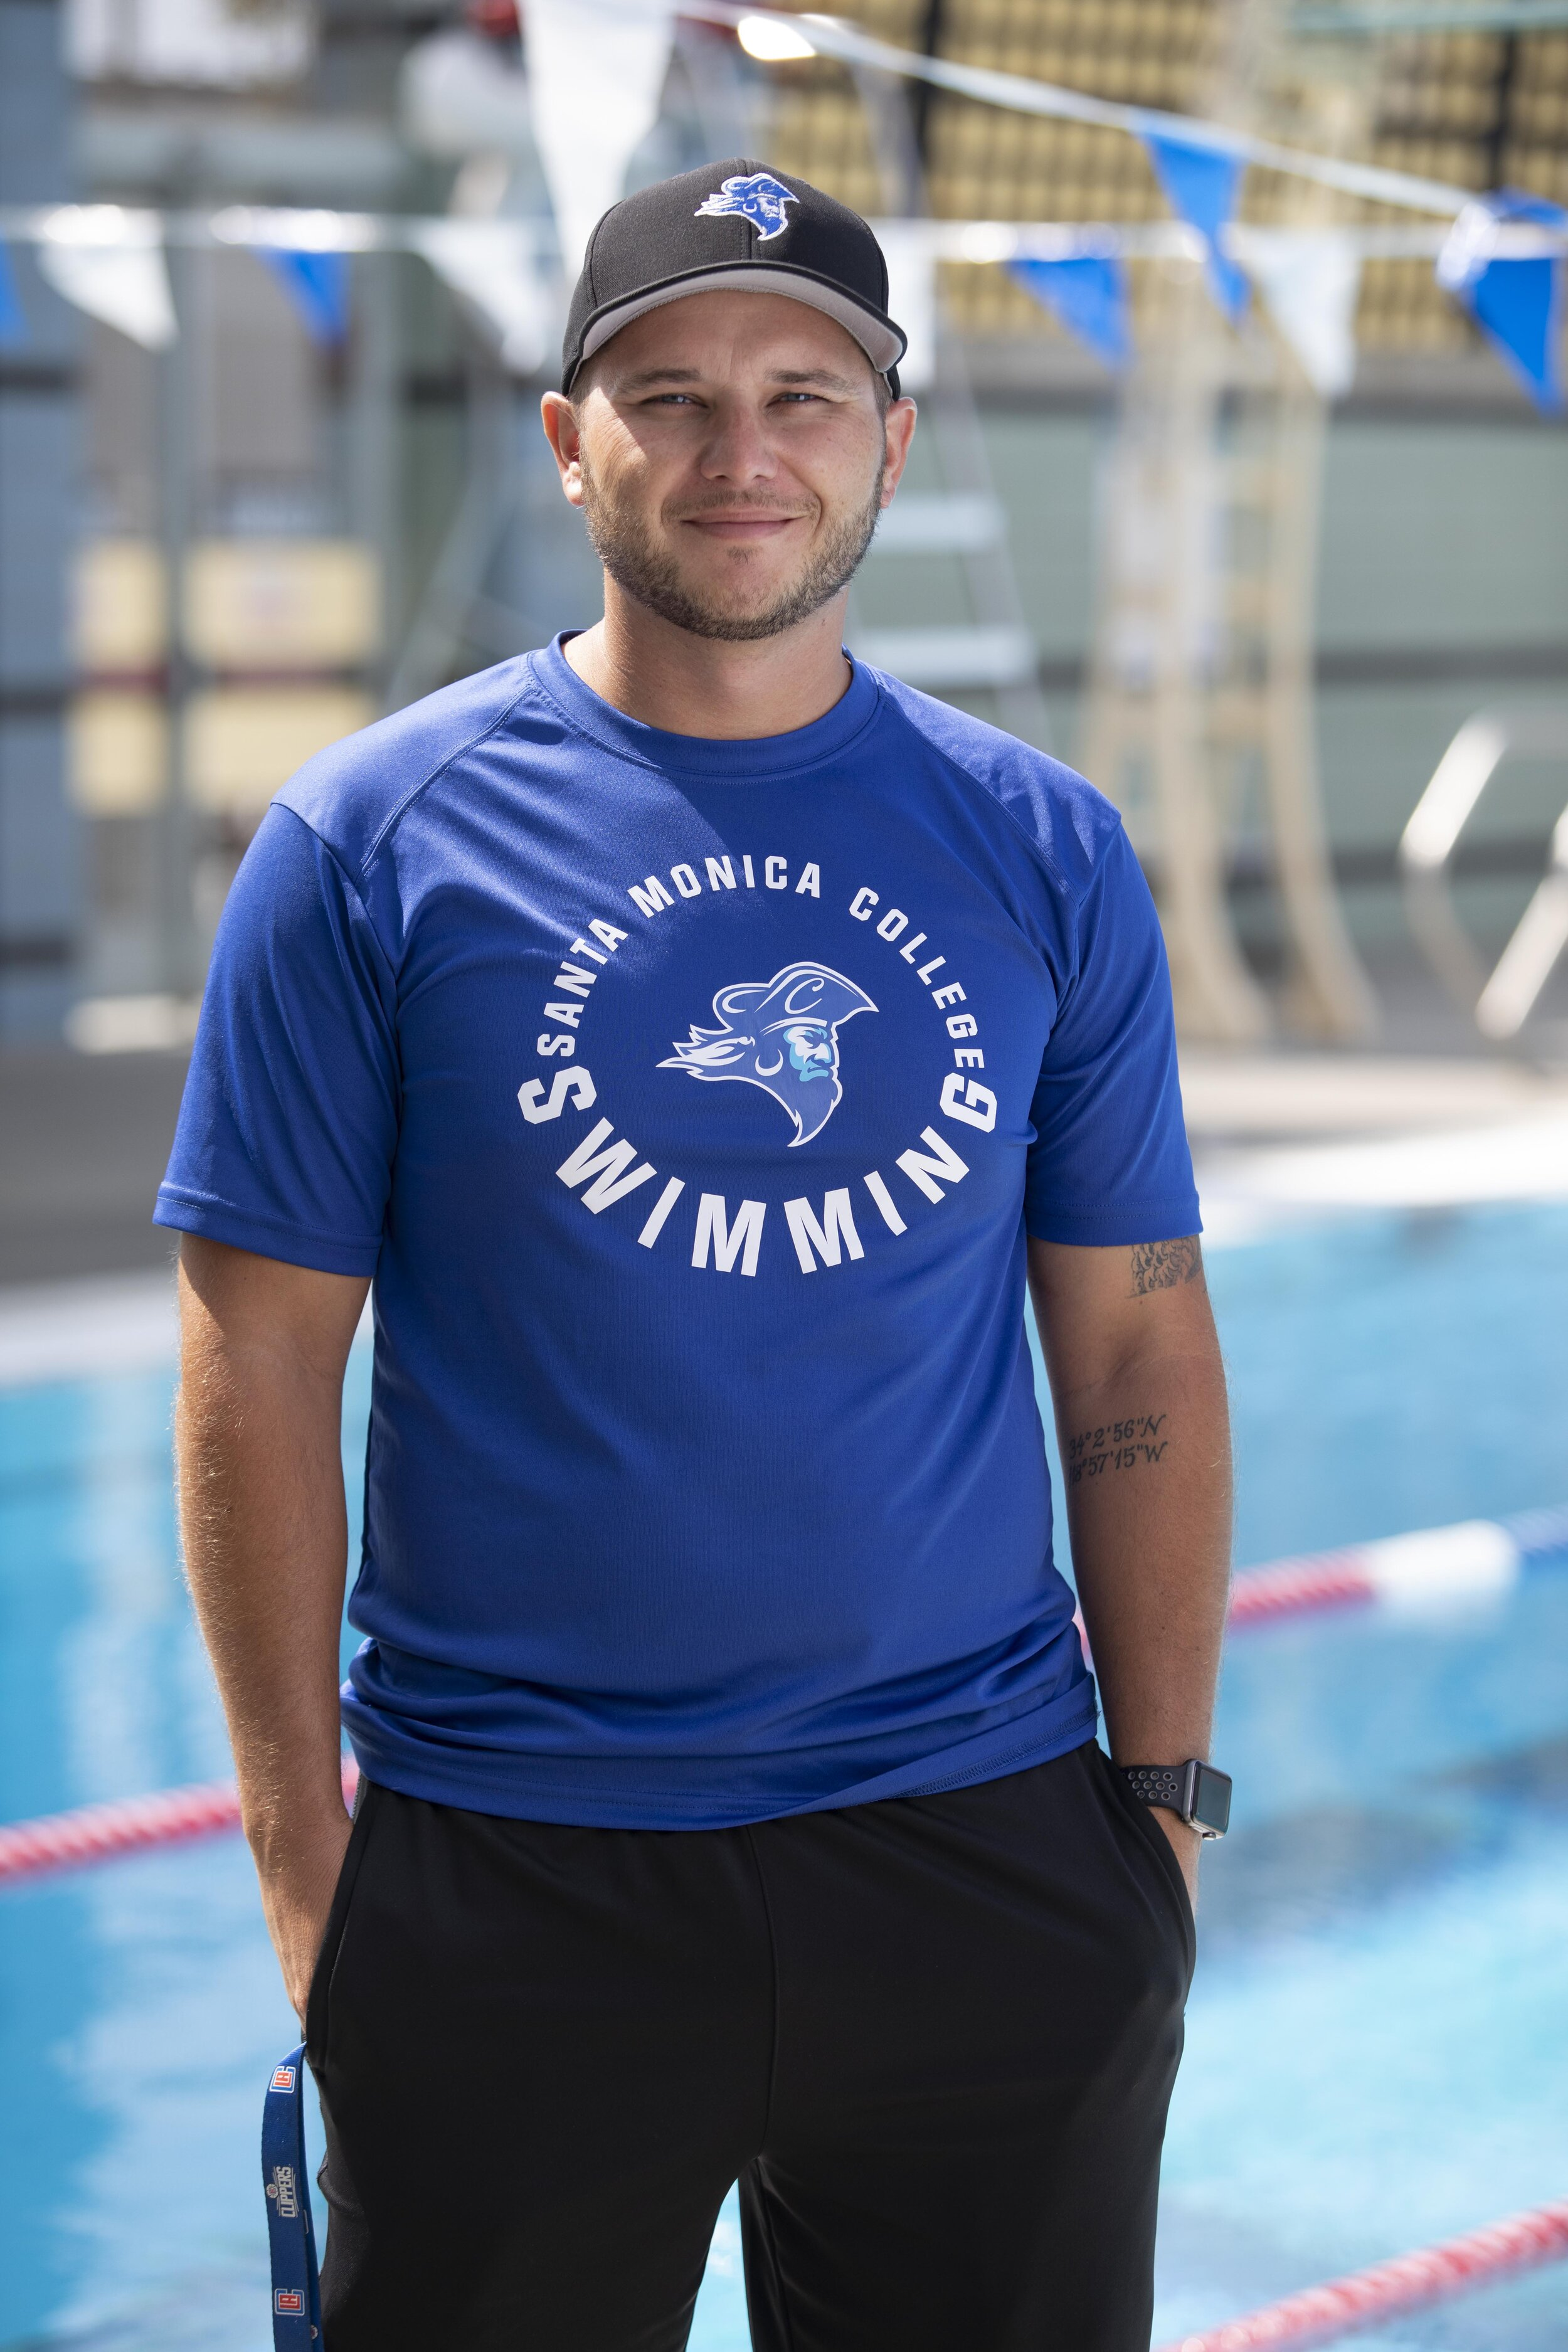 The womens water polo head coach Brian Eskridge poses for a photo for The Corsair newspaper at the Santa Monica College Aquatics Center in Santa Monica Calif. (Joshua Nicoloro/The Corsair)